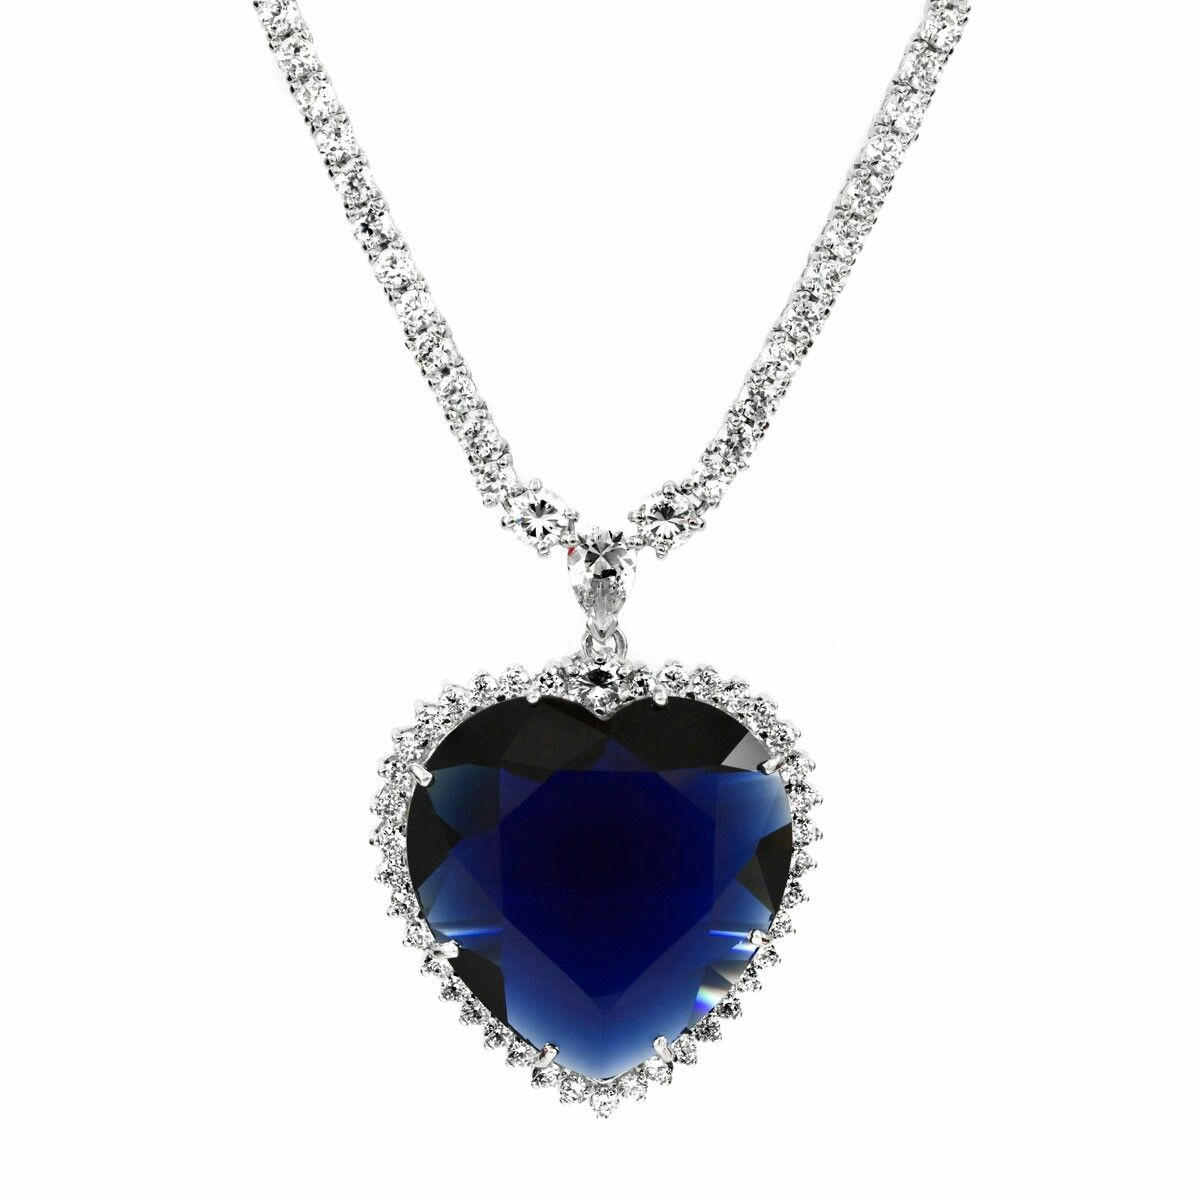 Pin by tea rhames eternal fantasyinc on the heart of the ocean the inspired by titanic heart of the ocean necklace pendant is a stunning carat simulated sapphire dont forget to shop our matching inspired blue heart aloadofball Image collections